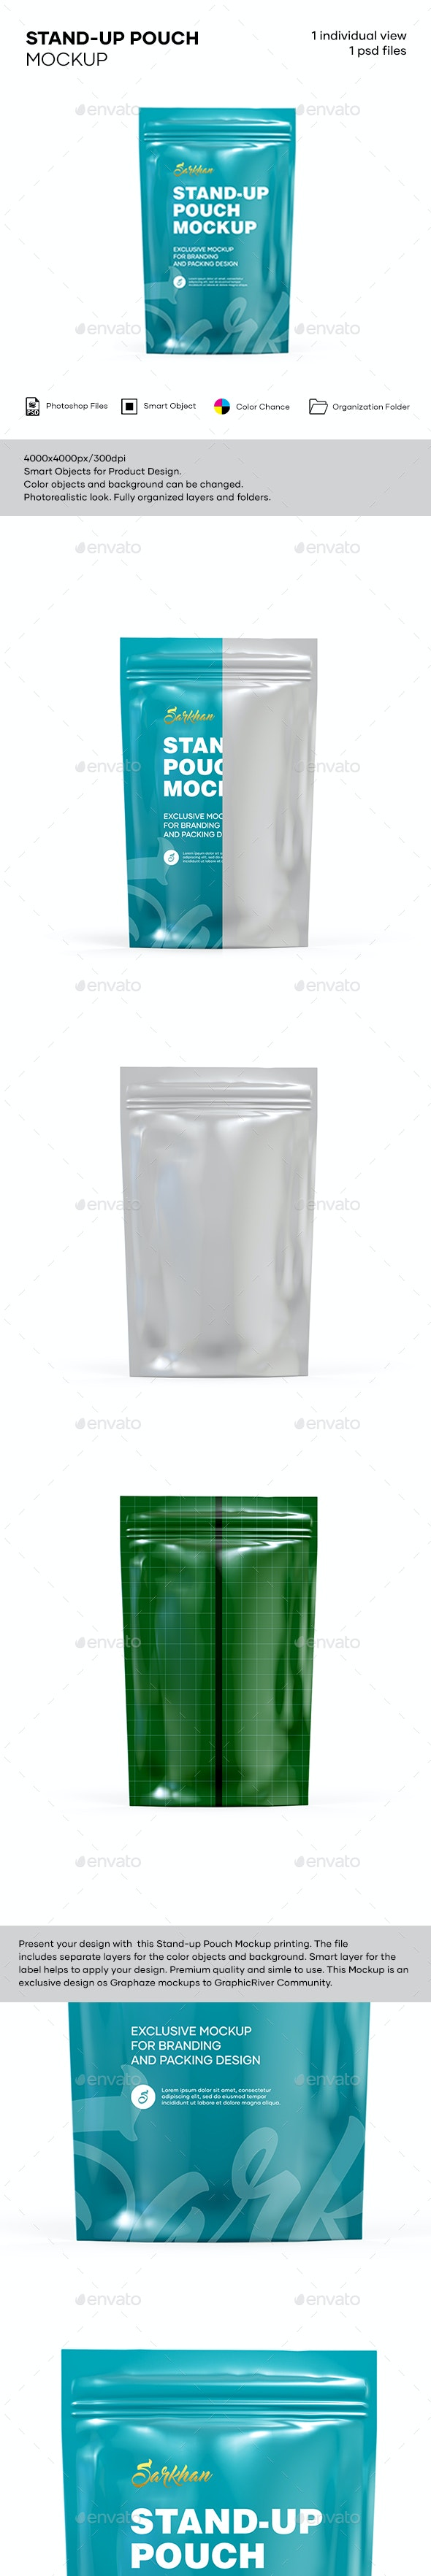 STAND-UP POUCH MOCKUP - Product Mock-Ups Graphics